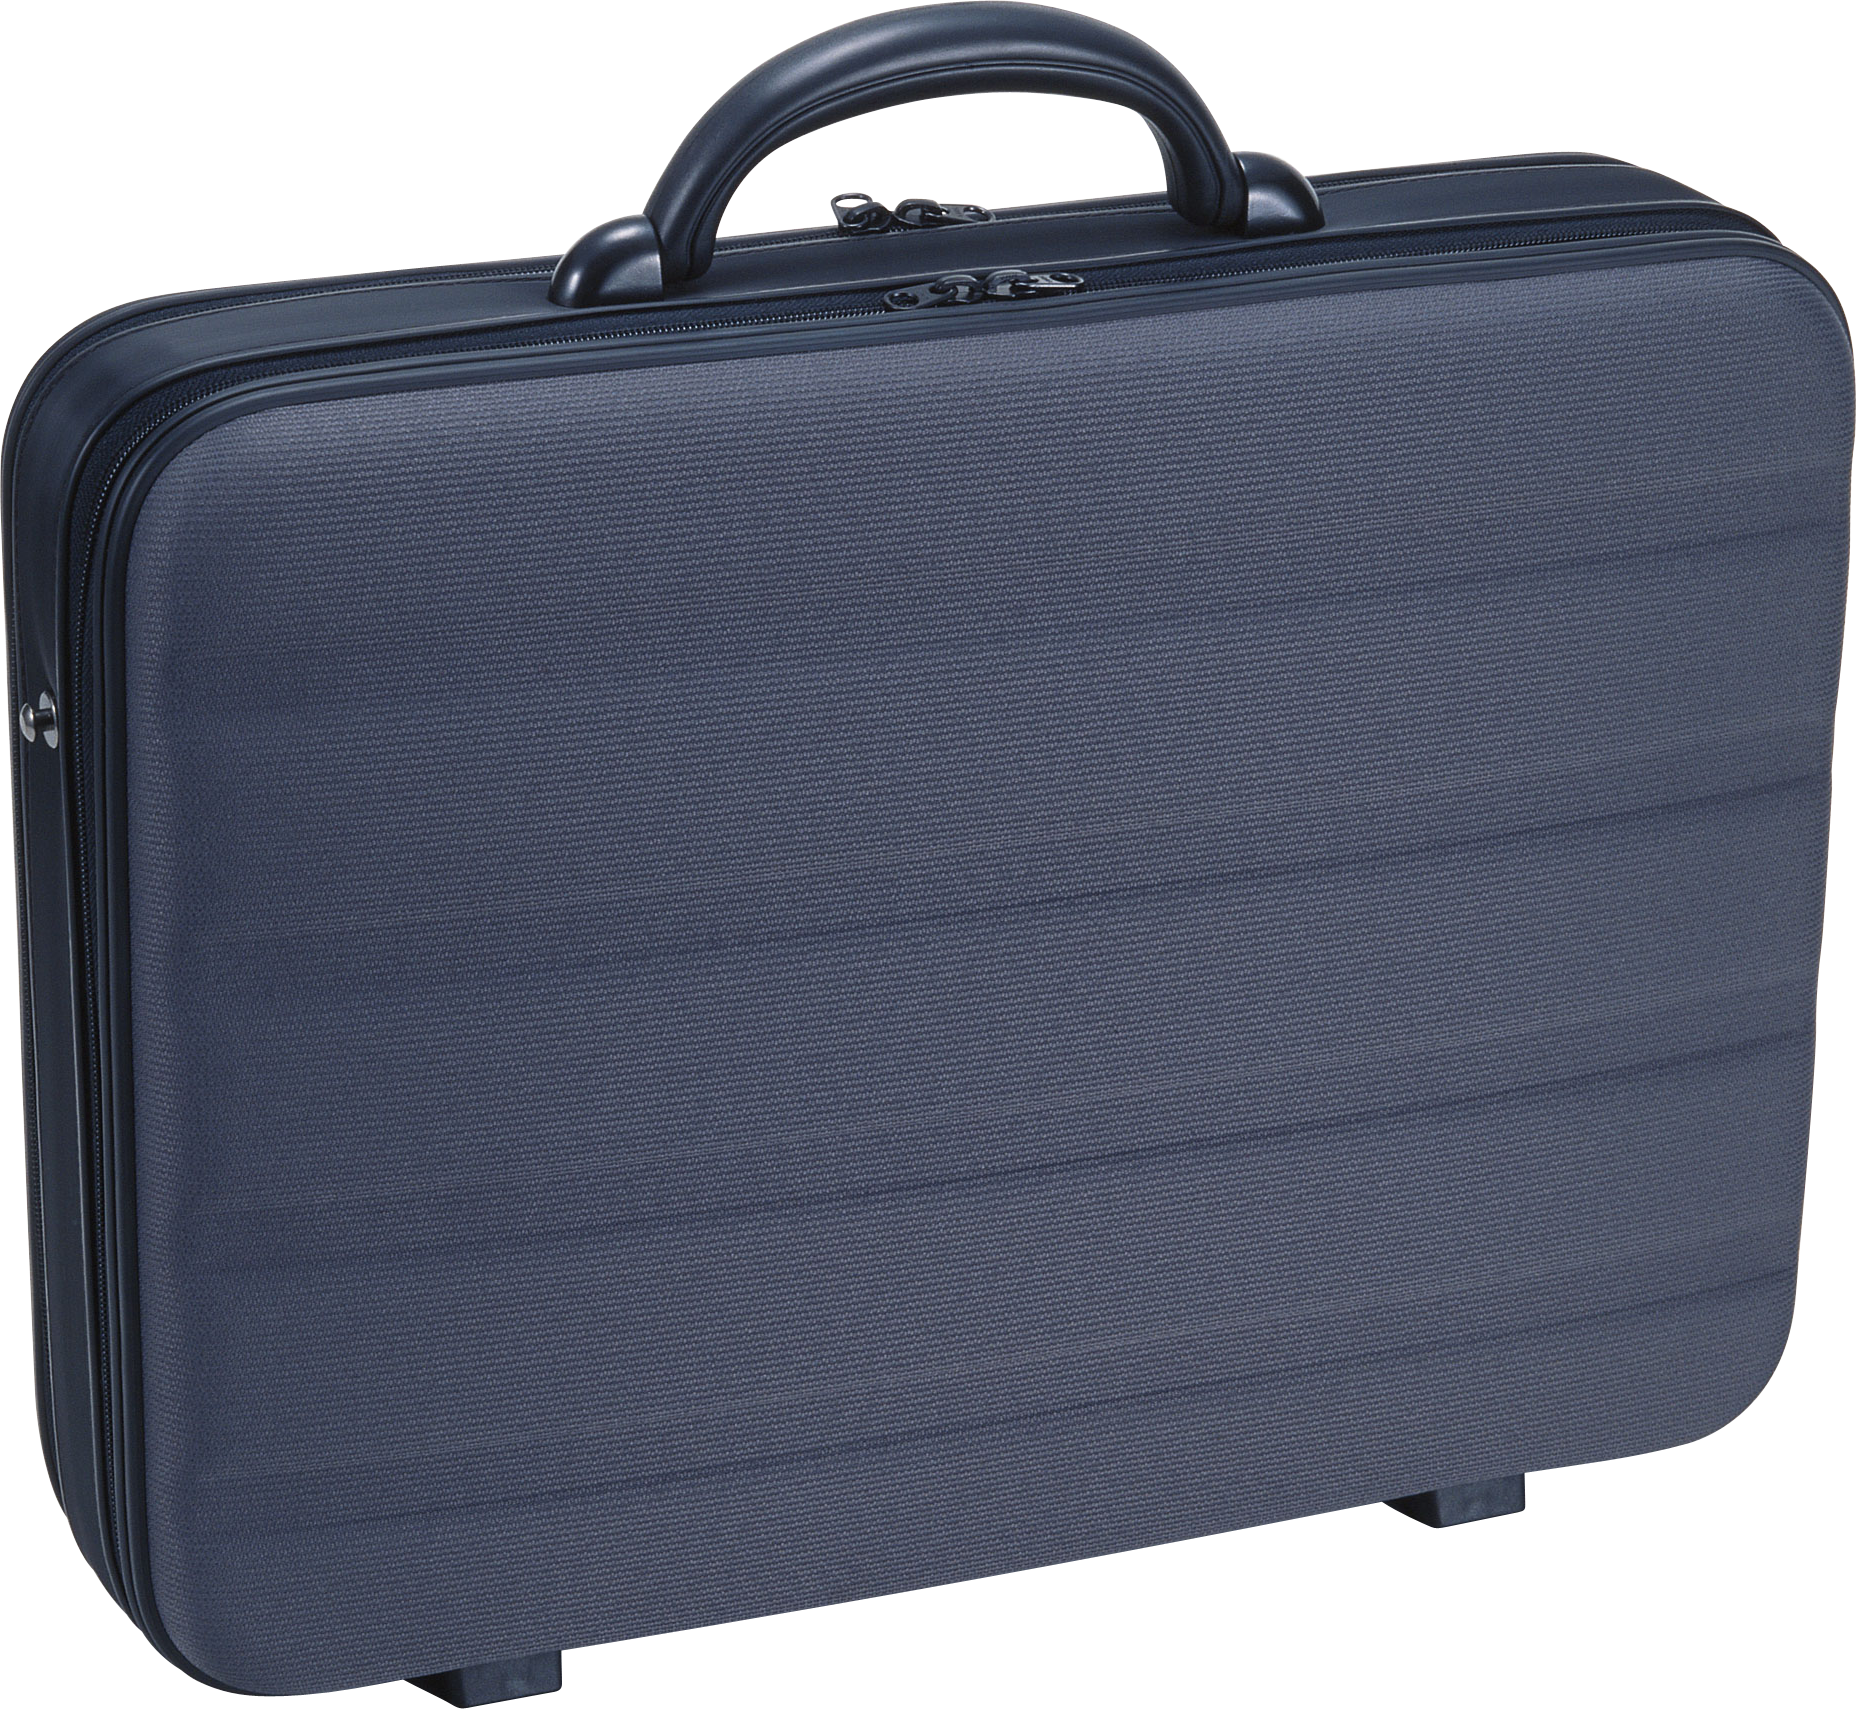 Grab and download Suitcase Icon PNG